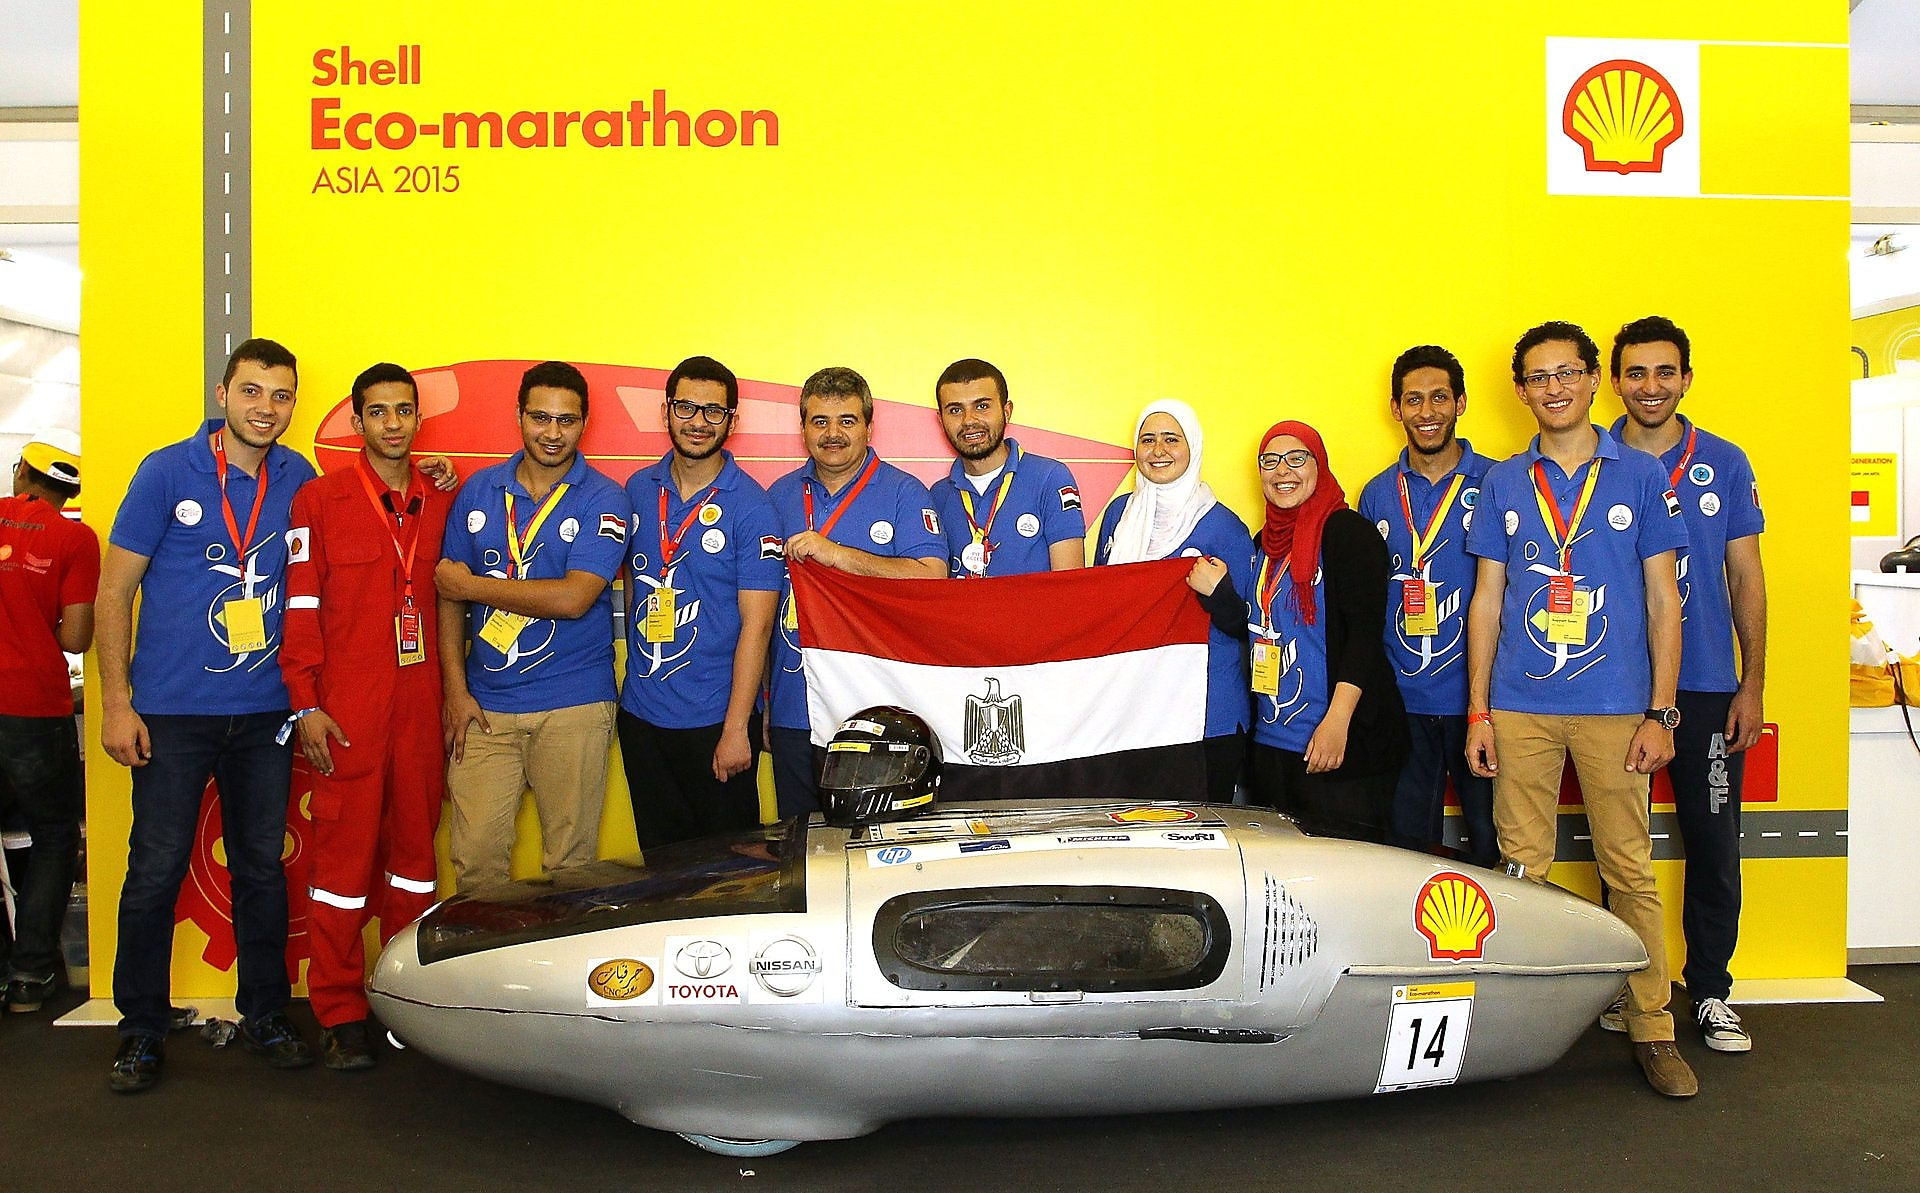 The Siraj, #14, Prototype, competing for team ASU Racing Team from Ain Shams University, Egypt poses for a team portrait during day two of the Shell Eco-marathon in Manila, Philippines, Friday, Feb. 27, 2015.